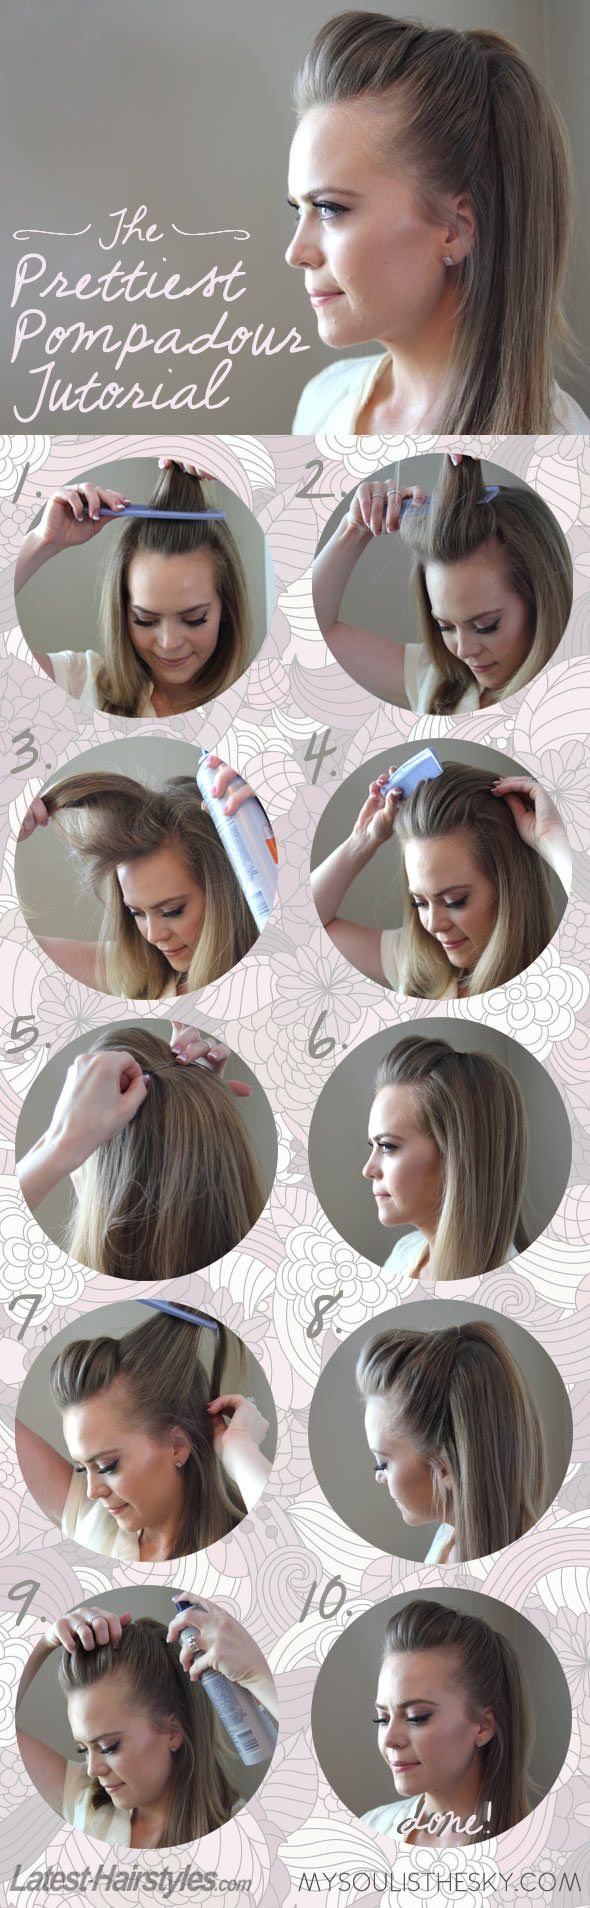 The Easiest Pretty Pompadour Tutorial You'll Ever See | DIY & Crafts